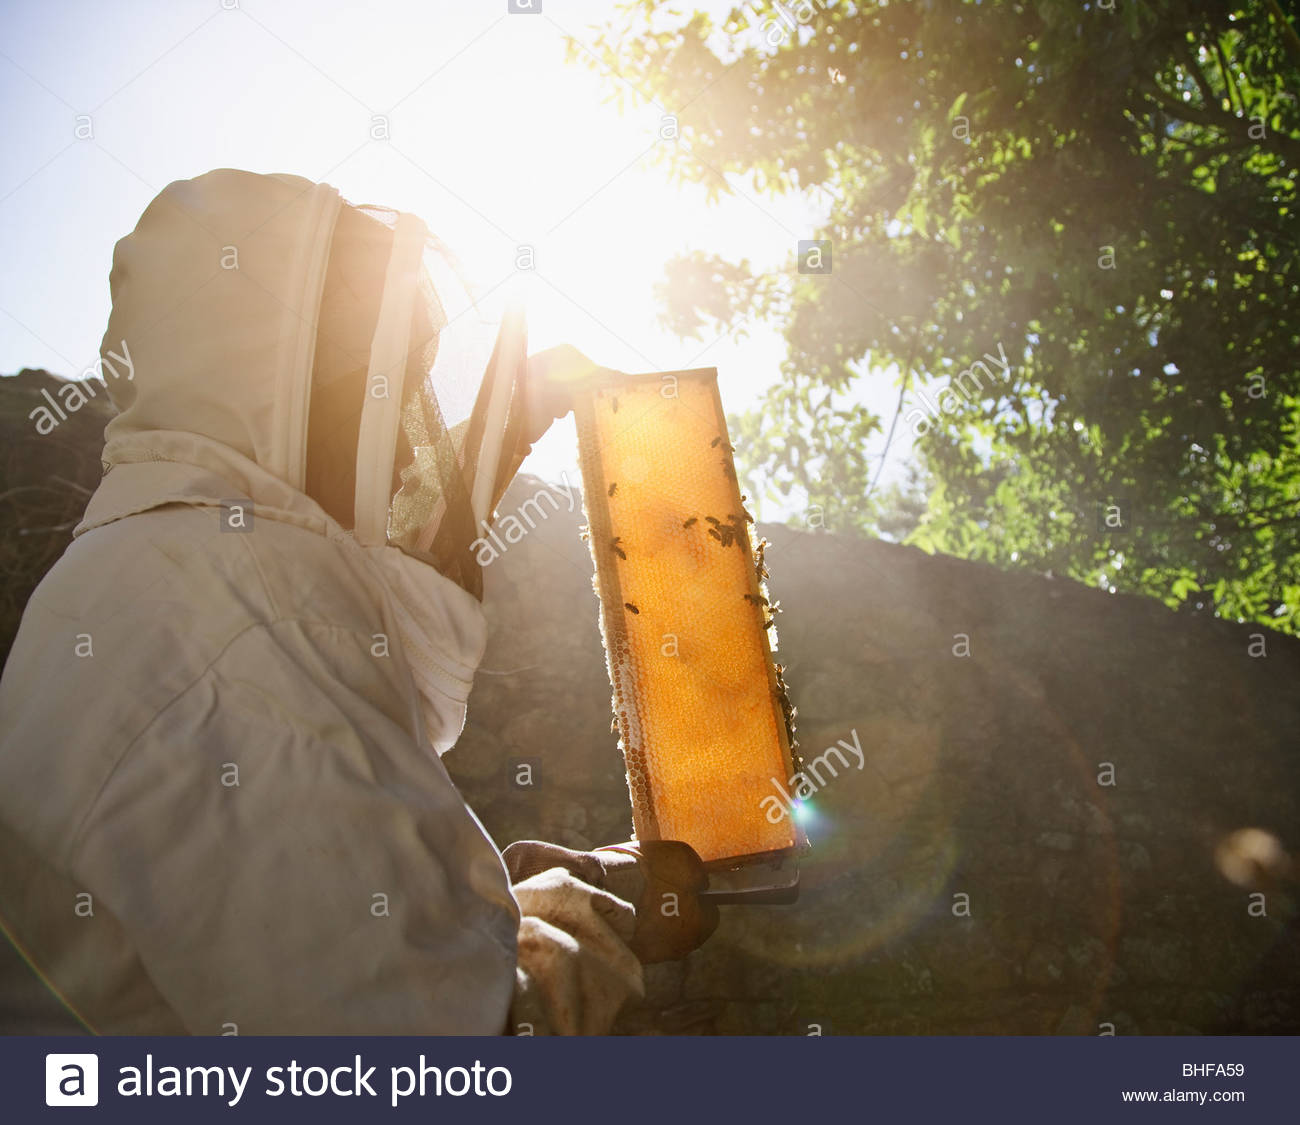 Beekeeper  holding bees and honeycomb Stock Photo